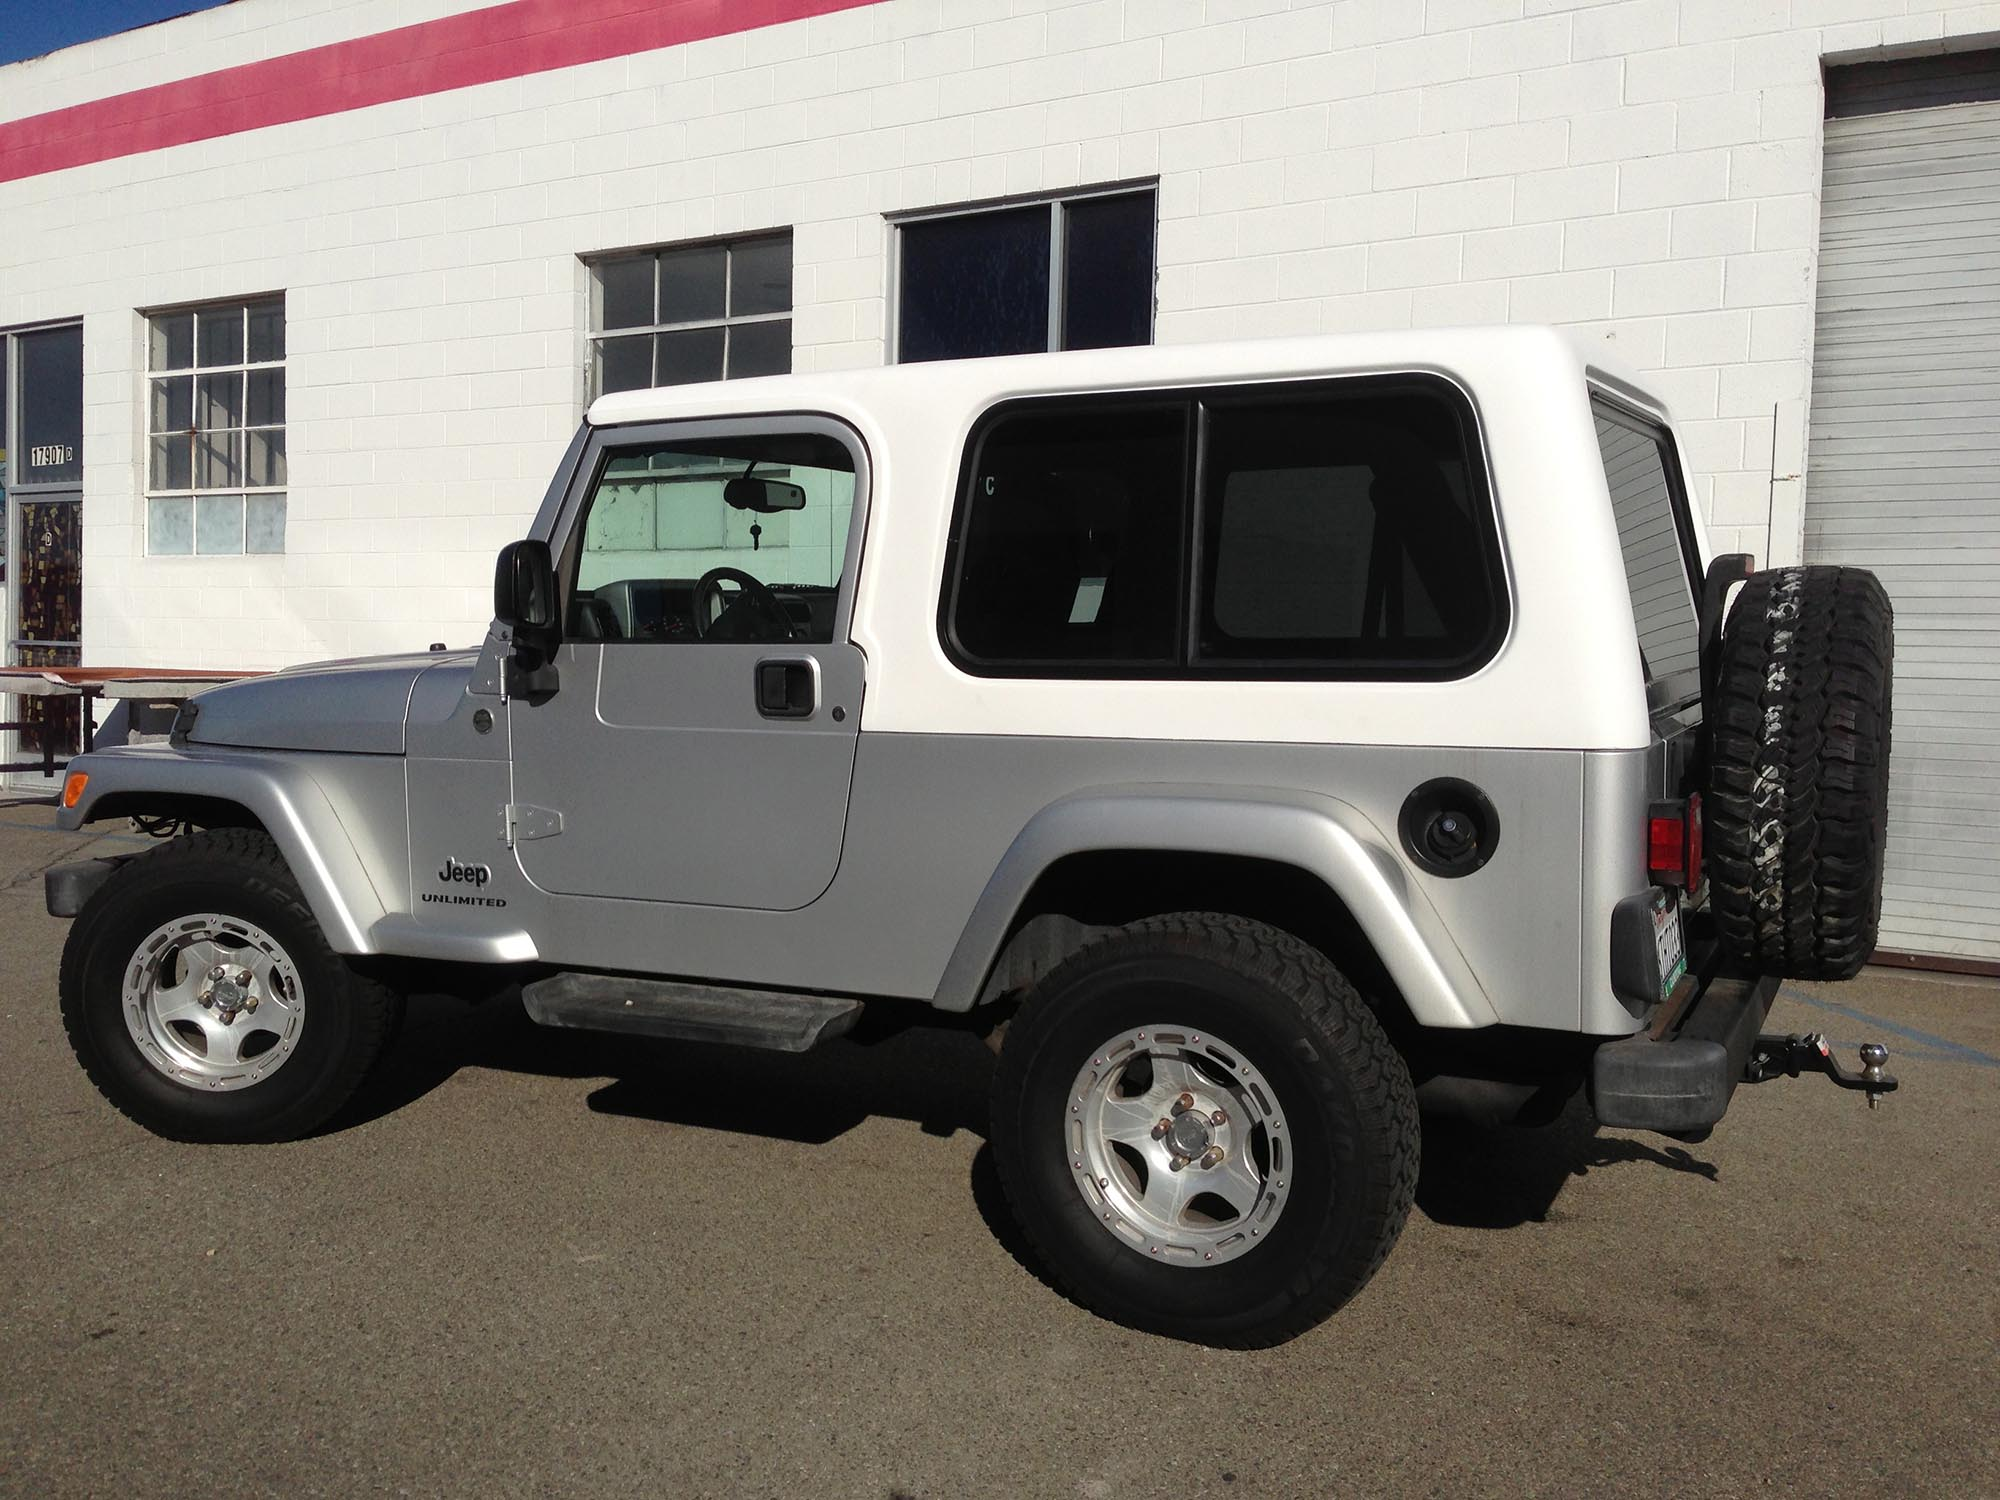 Jeep Hardtop Manufacturer for Brand New Hardtops and Top